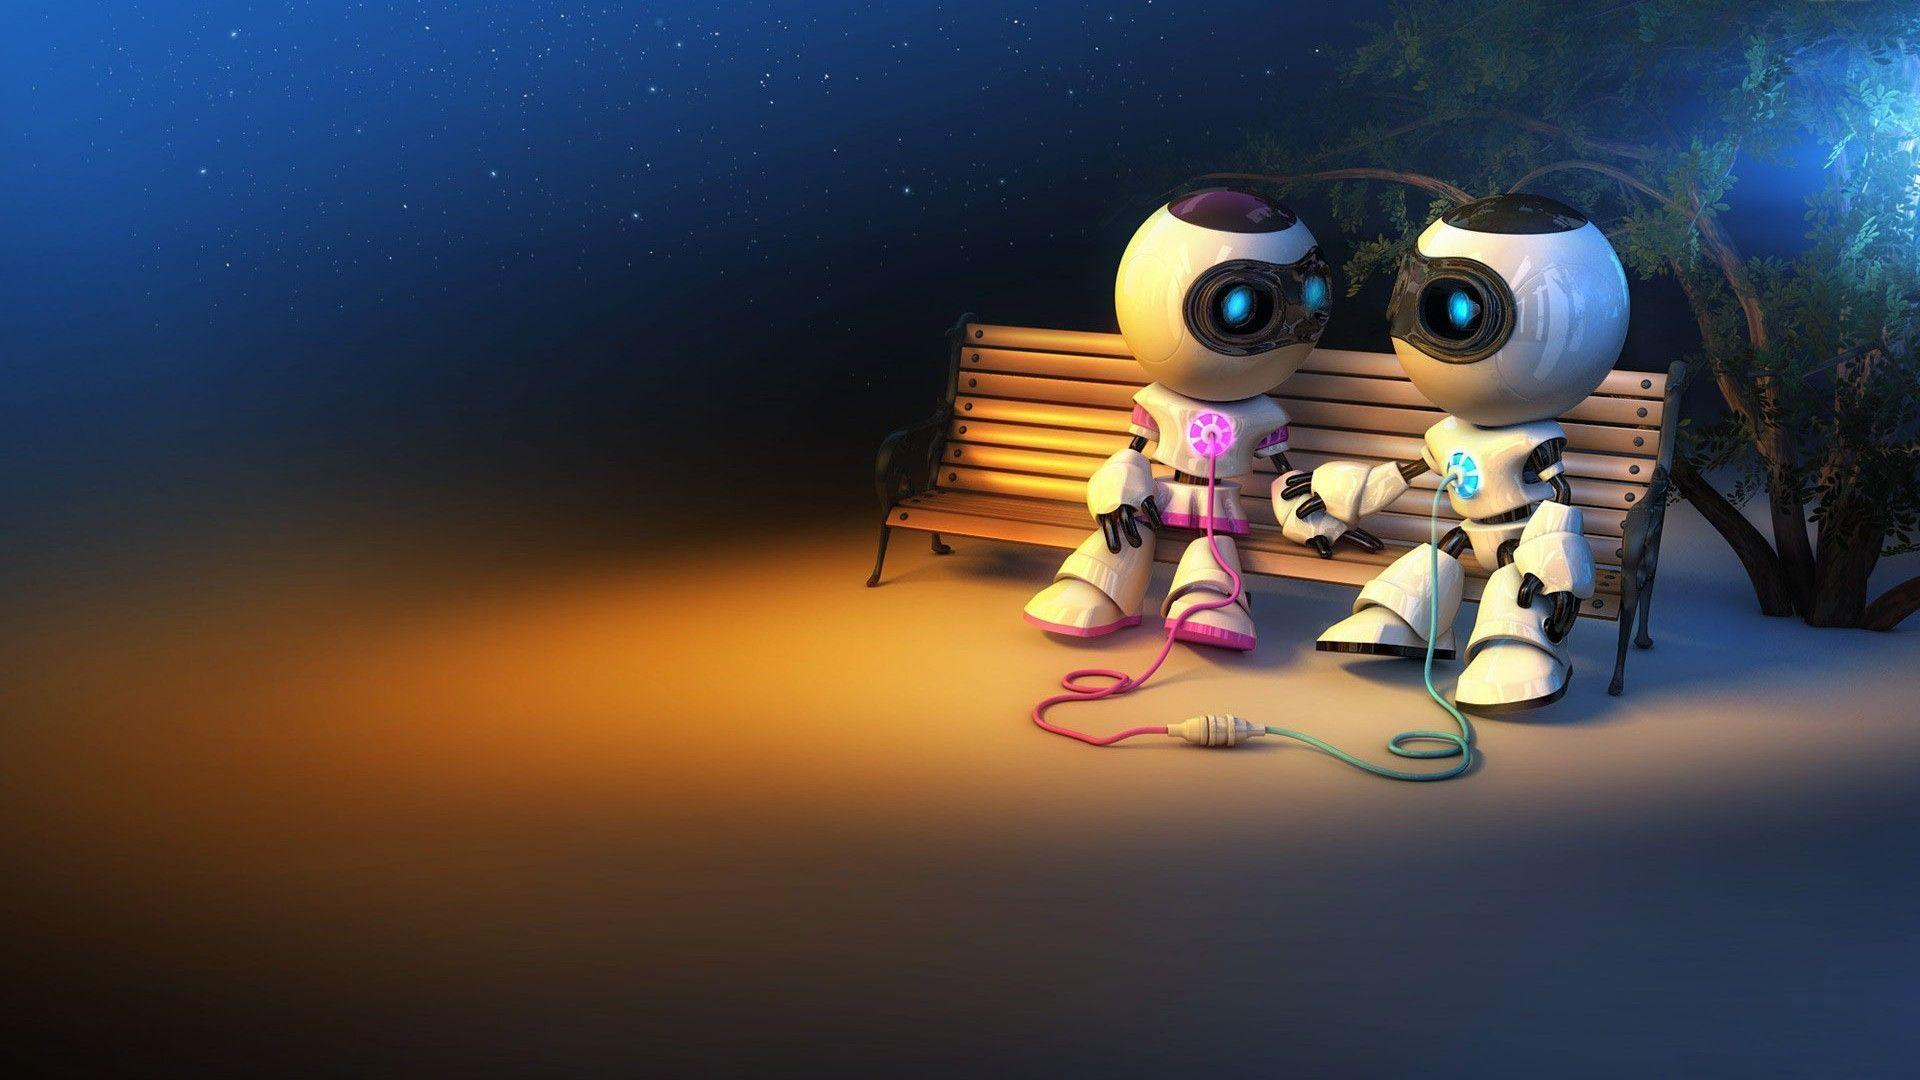 cute Love Hd Wallpapers For Laptop : cute Robot Wallpapers - Wallpaper cave